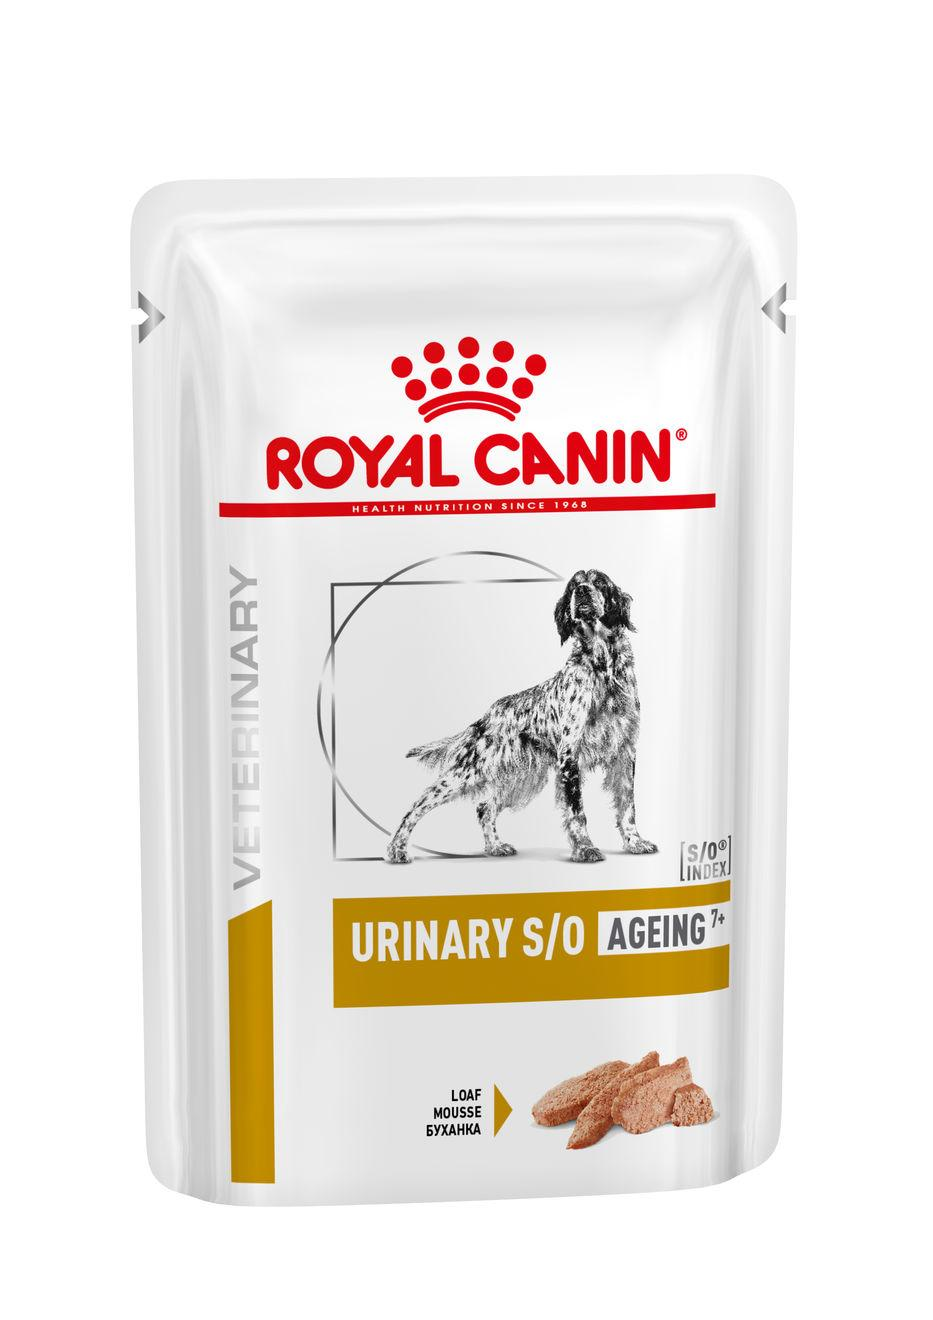 Royal Canin Veterinary Health Nutrition Dog URINARY SO Age Pouch Loaf kapsa - 85g